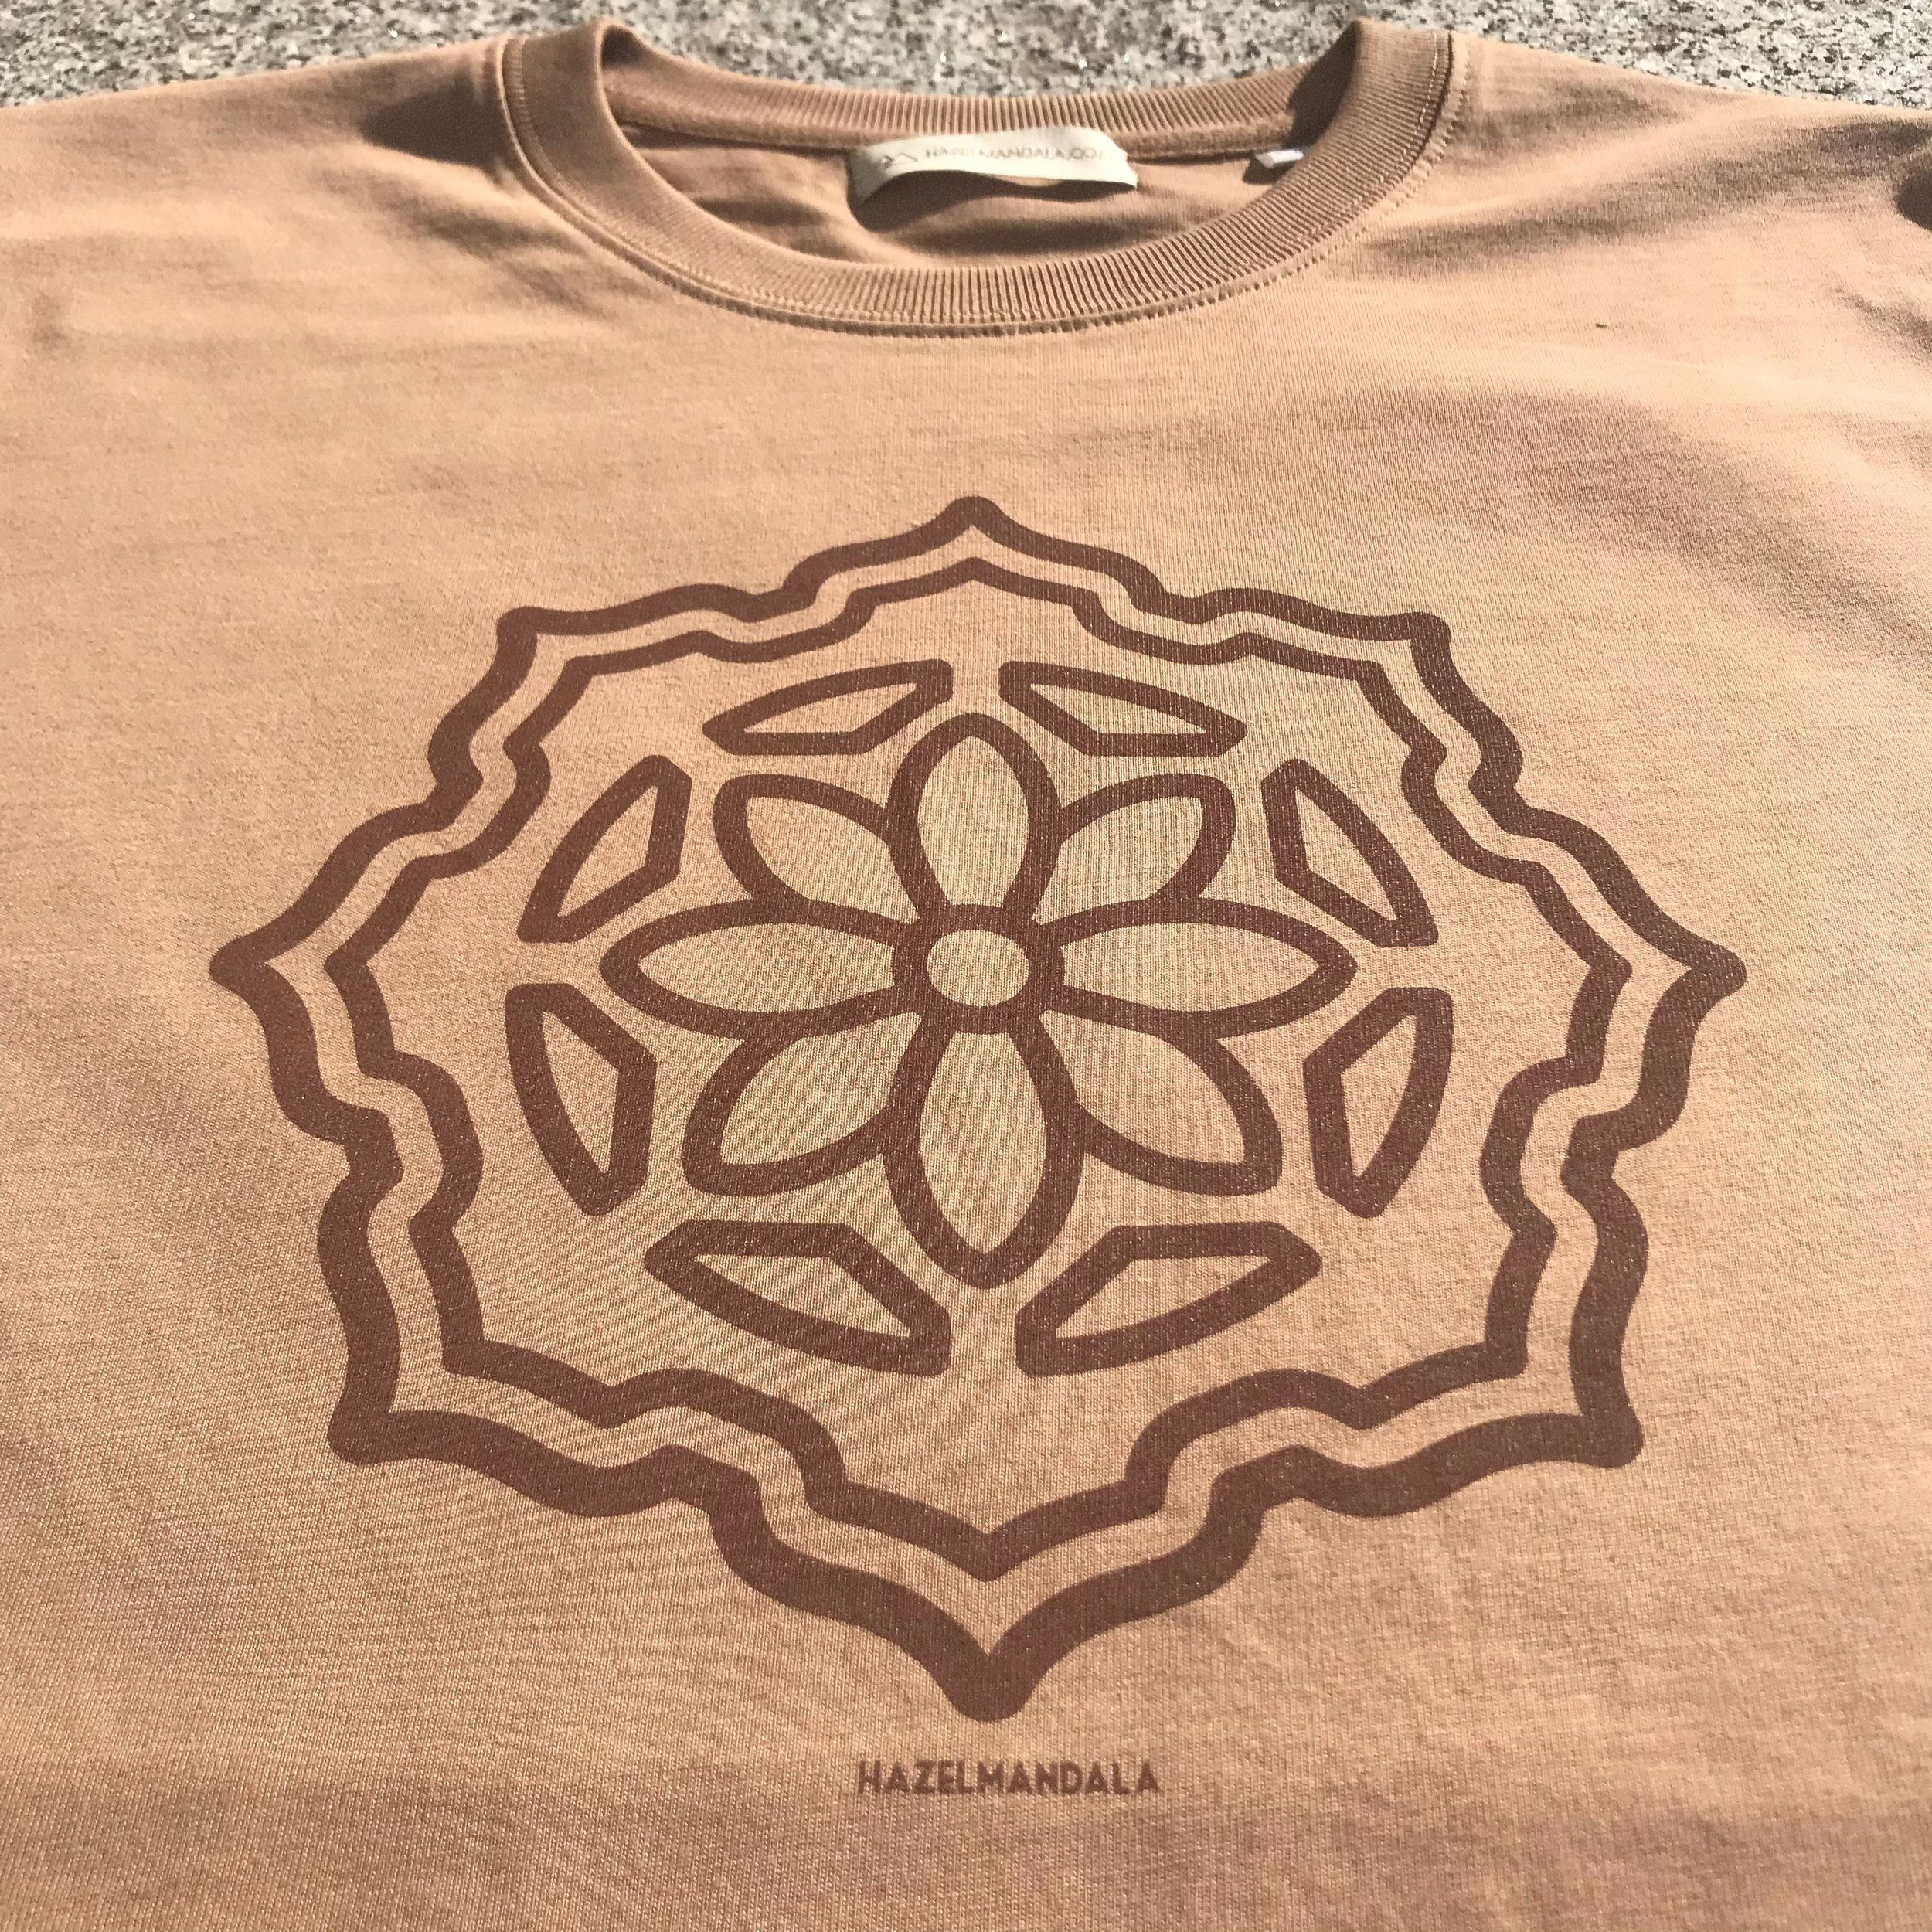 Hazel mandala Albzia shirt - The Huachuma Flower in bloom, Organic 100% Cotton. Stanley/Stella Sparker Thick Shirt. Created in Ethical & Ecological Ways . Sweatshop Free! Caramel Short Sleeve & Longsleeve Avaliable$40 AUD short sleeve , $45 Long sleeve + postage